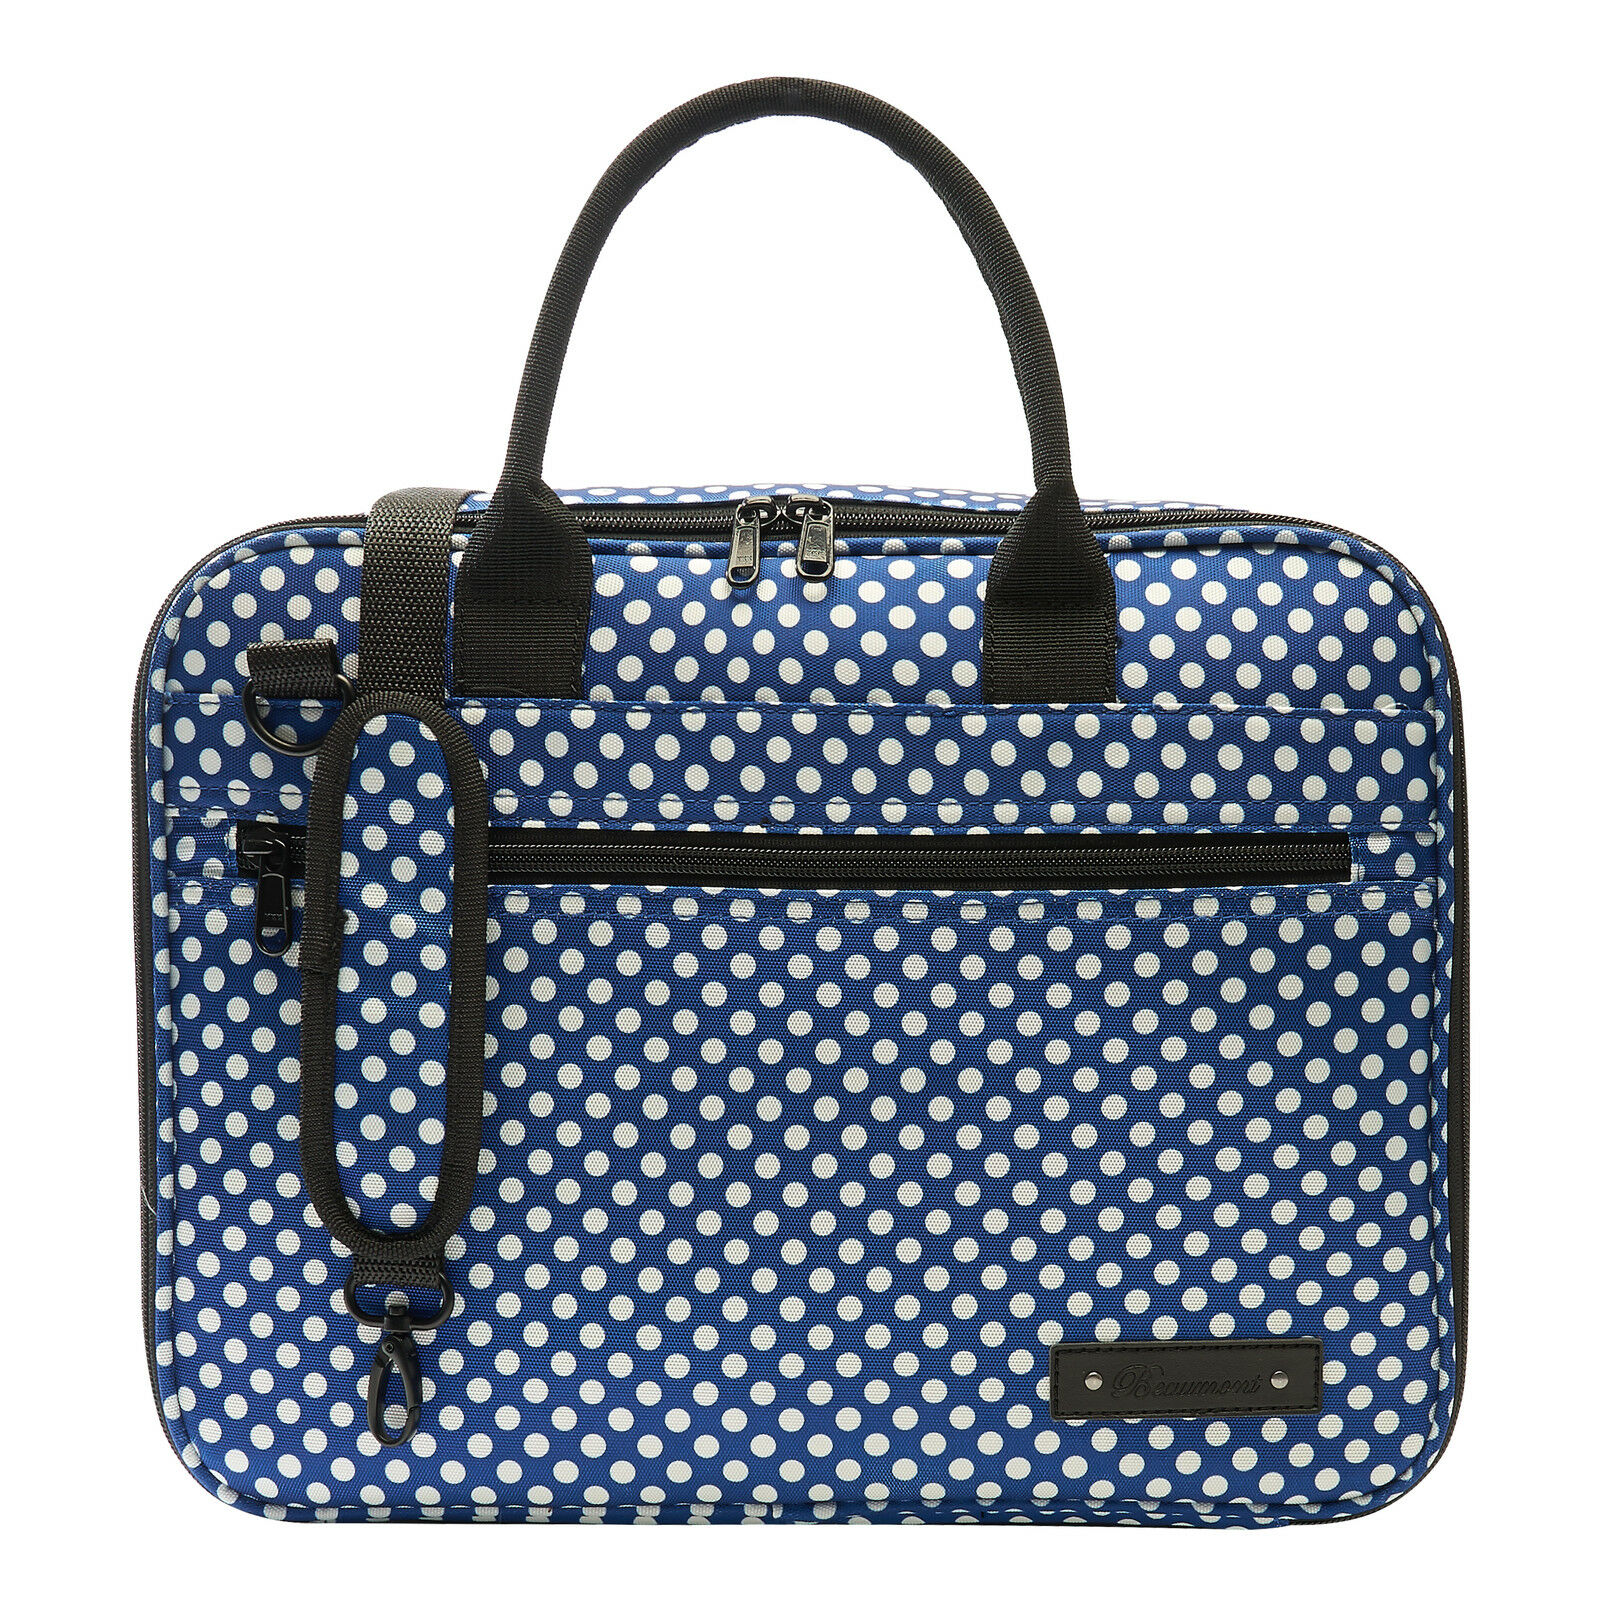 Beaumont Clarinet/Oboe Blau Polka Dot Case Cover - Bb Student Outer Carry Bag